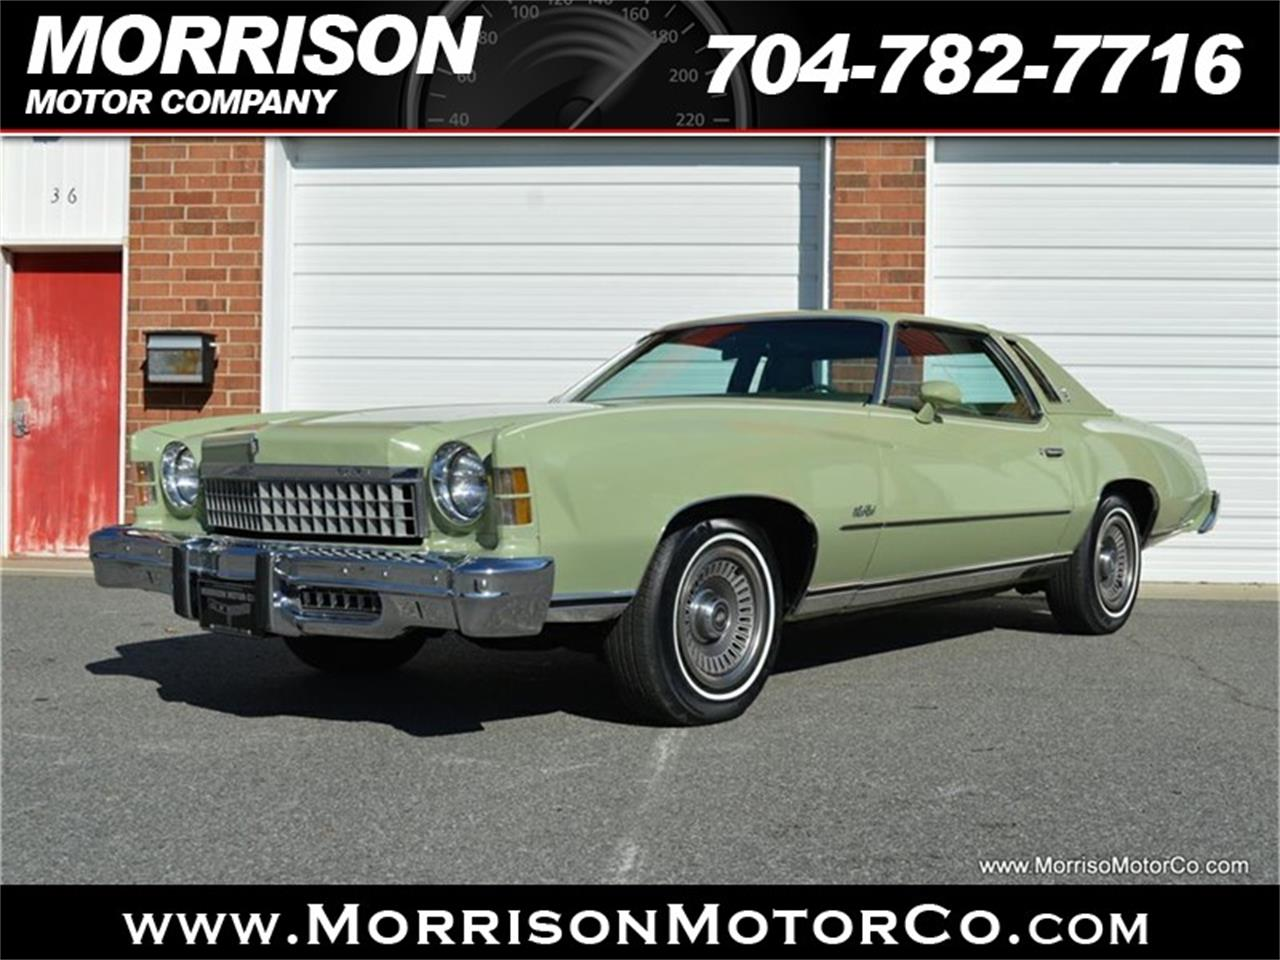 Large Picture of '74 Chevrolet Monte Carlo located in Concord North Carolina - $19,900.00 - PEZN